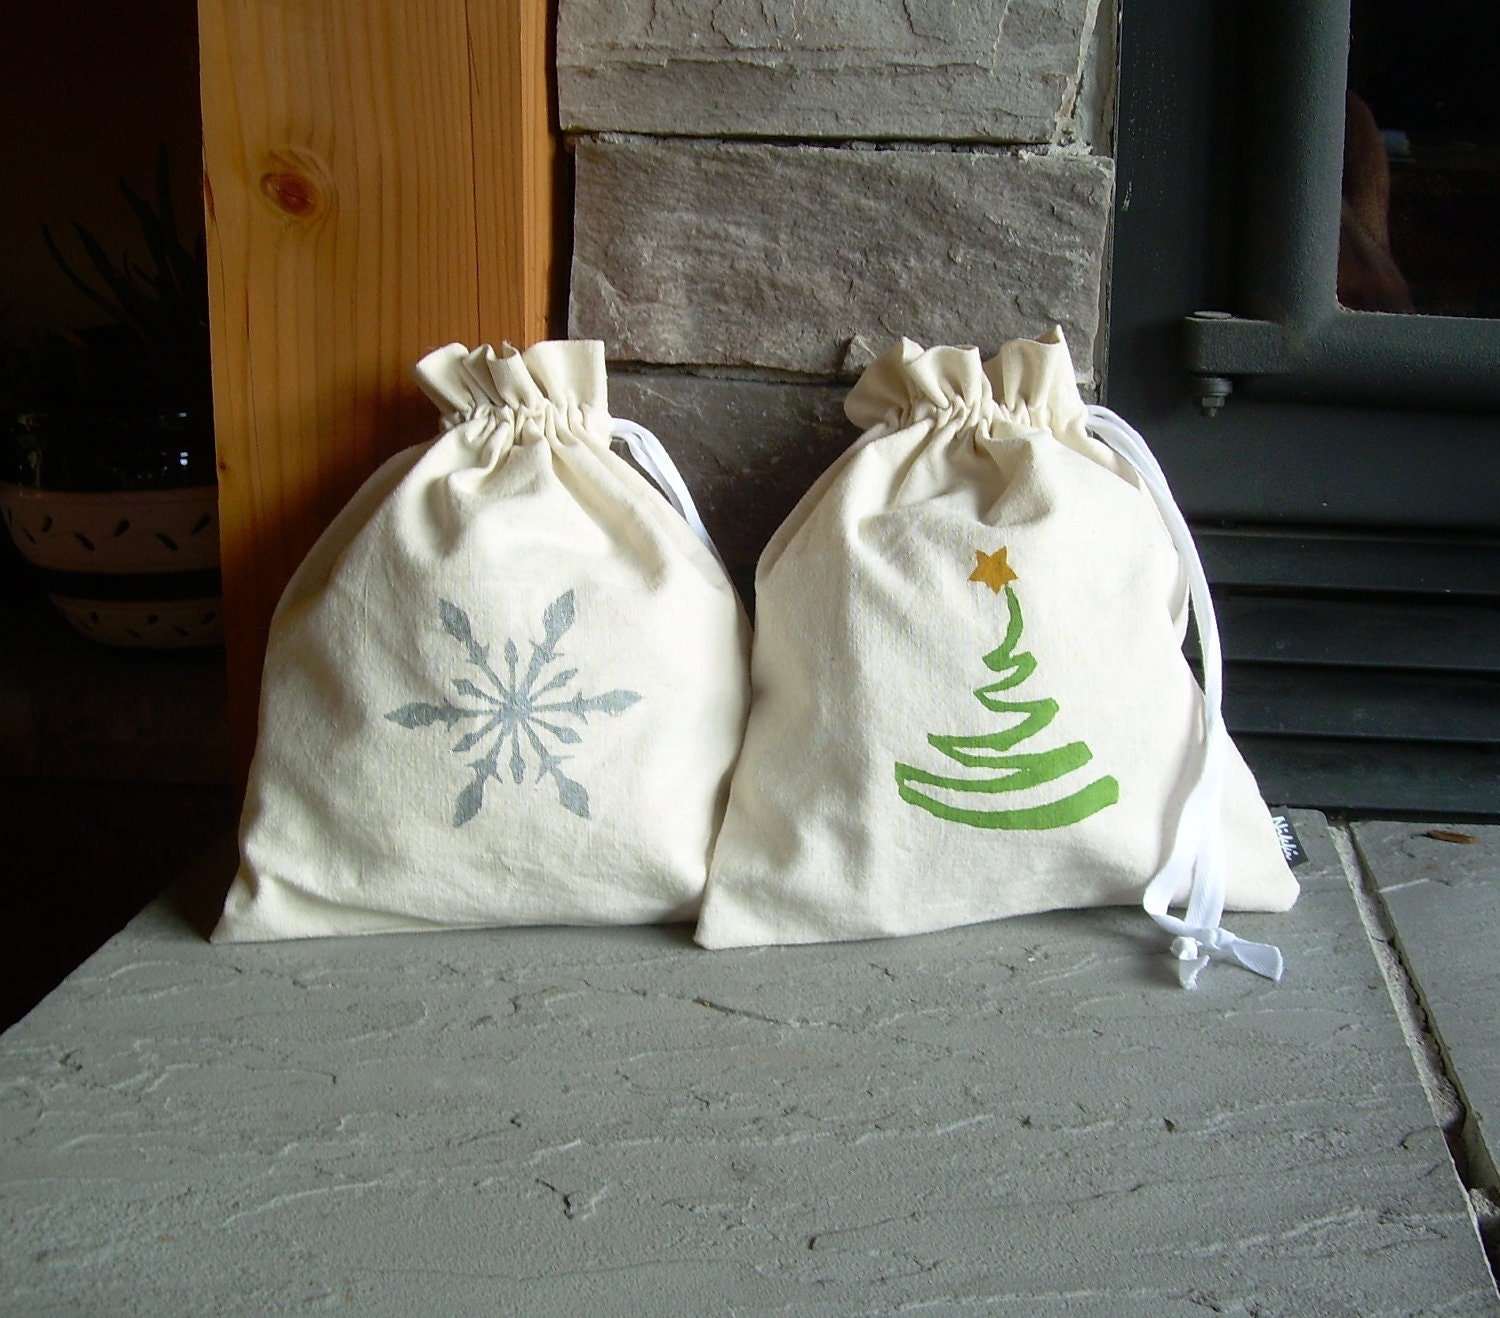 Large Christmas Gift Bag, Reusable, Hemp, Cotton, Linen, Organic from nikkidesigns on Etsy Studio